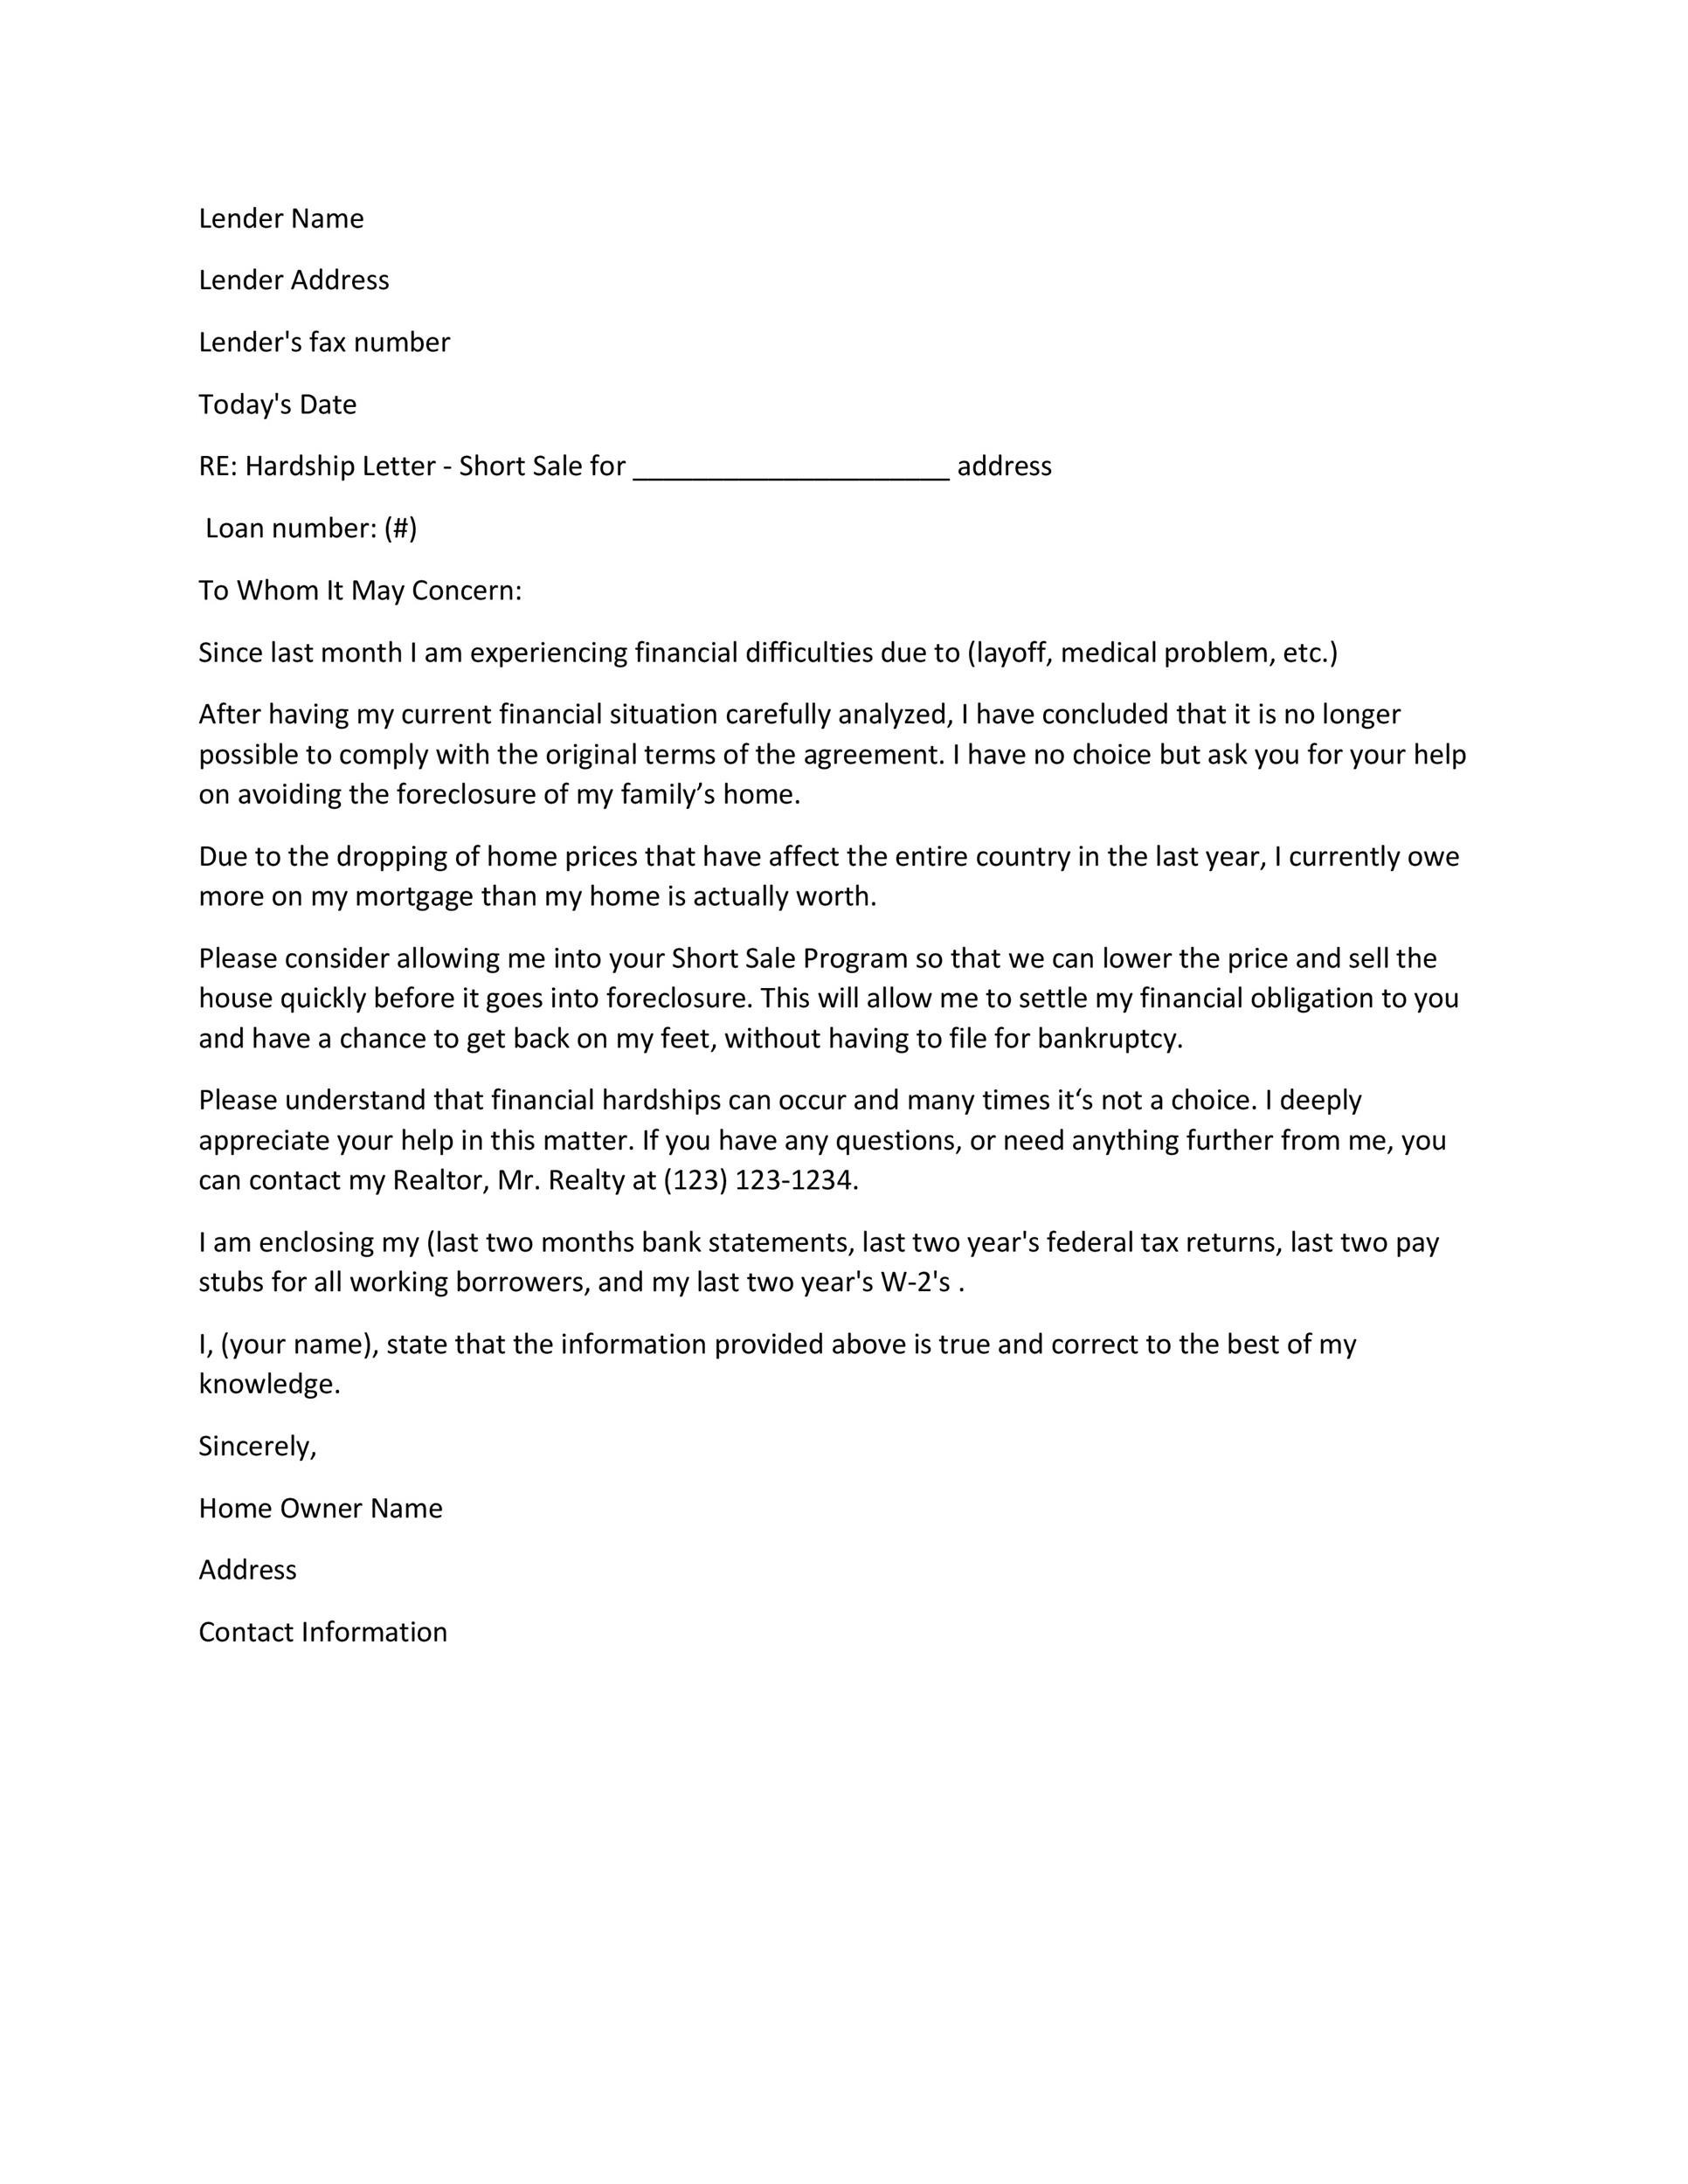 Loss Run Request Letter.35 Simple Hardship Letters Financial For Mortgage For